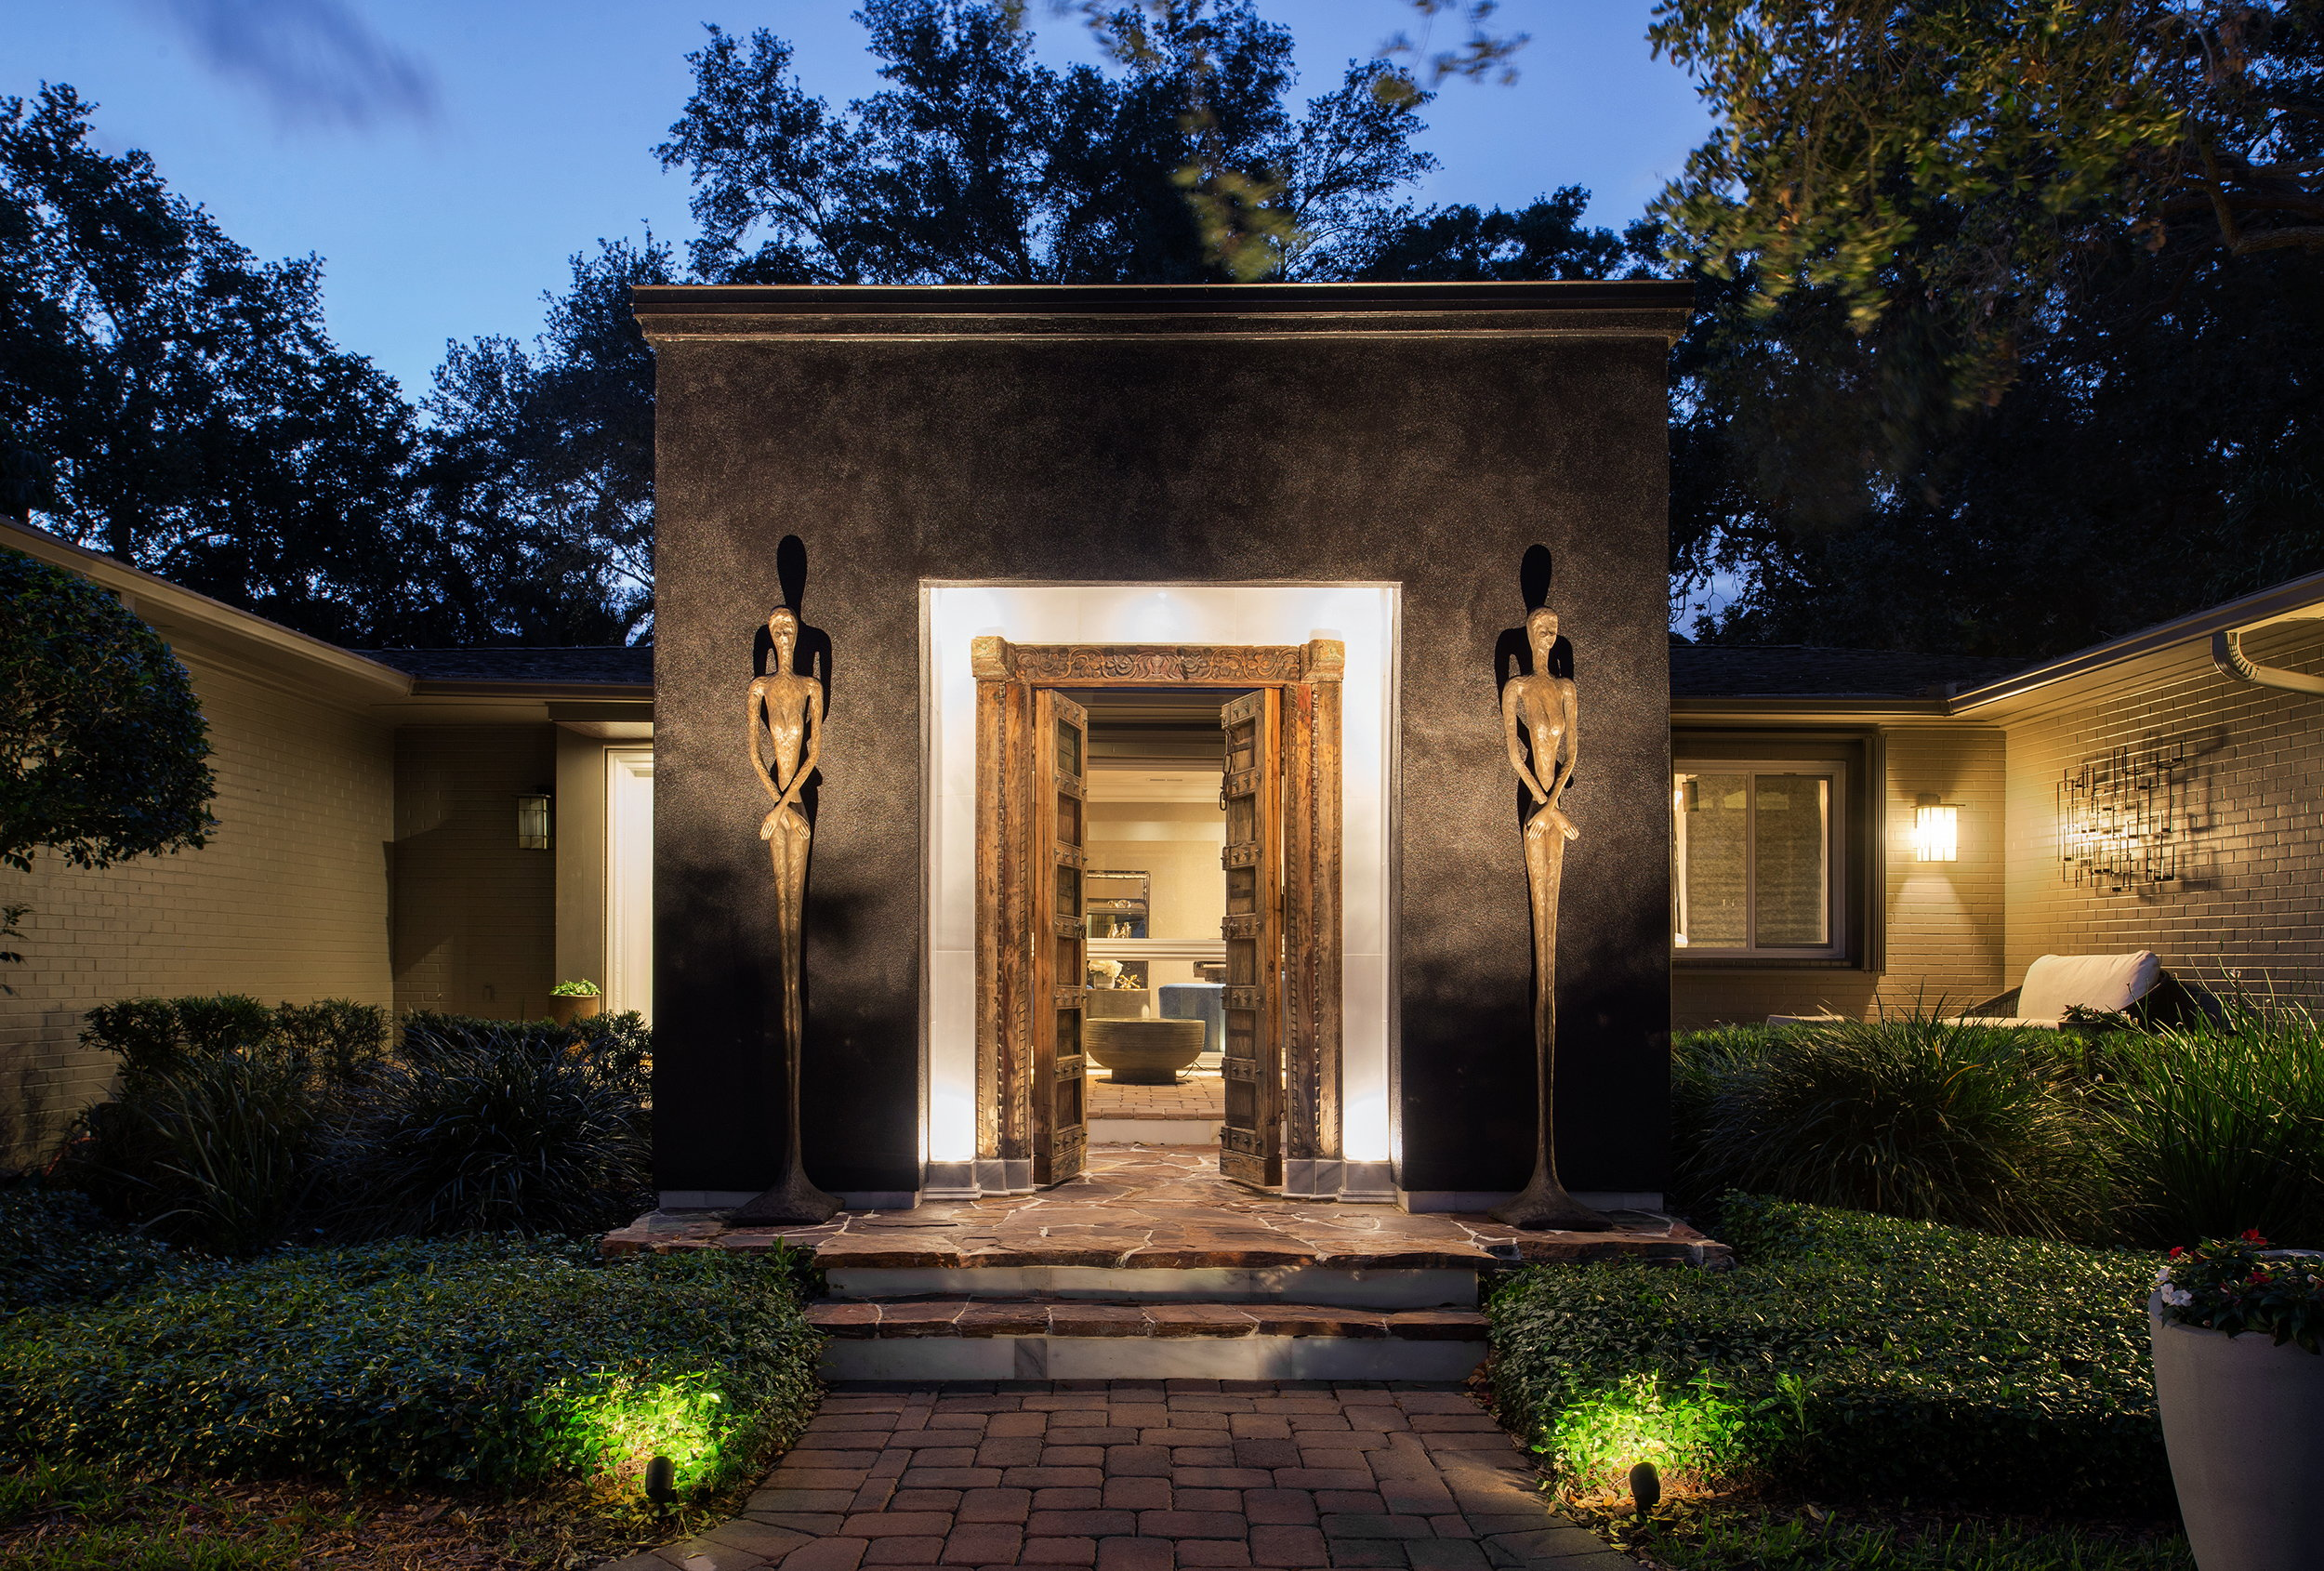 Tampa Residence by Sire Design